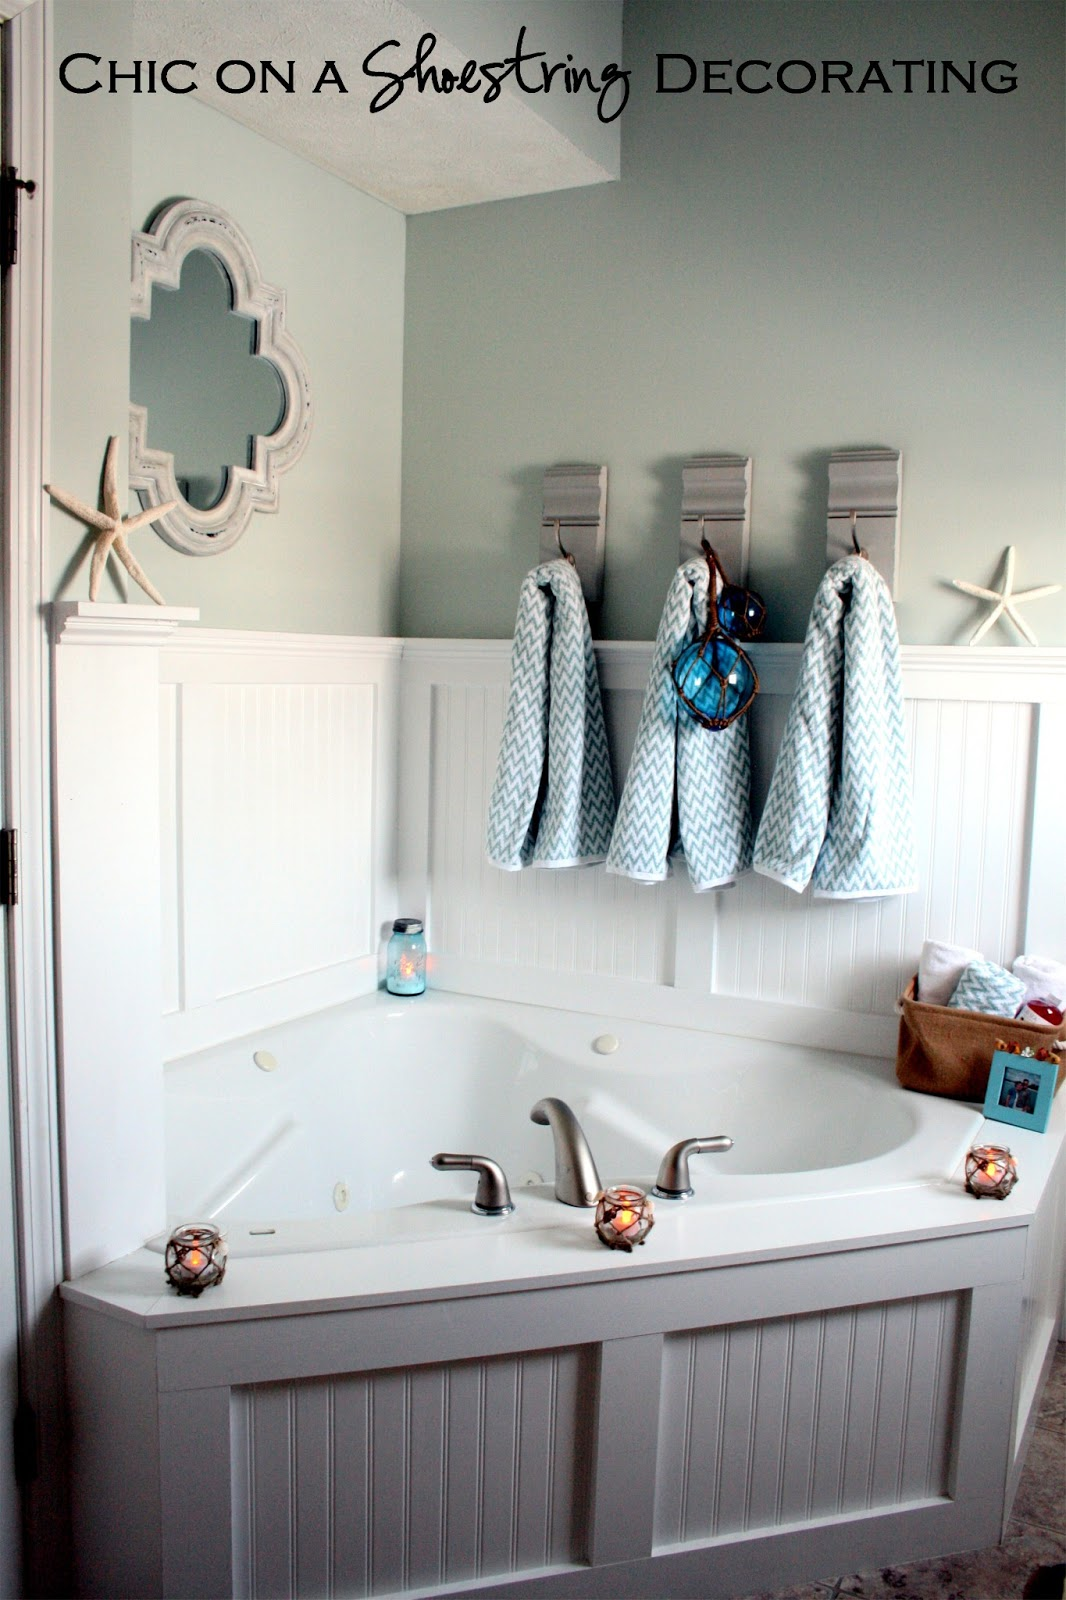 Chic on a shoestring decorating beachy bathroom reveal for Small coastal bathroom ideas